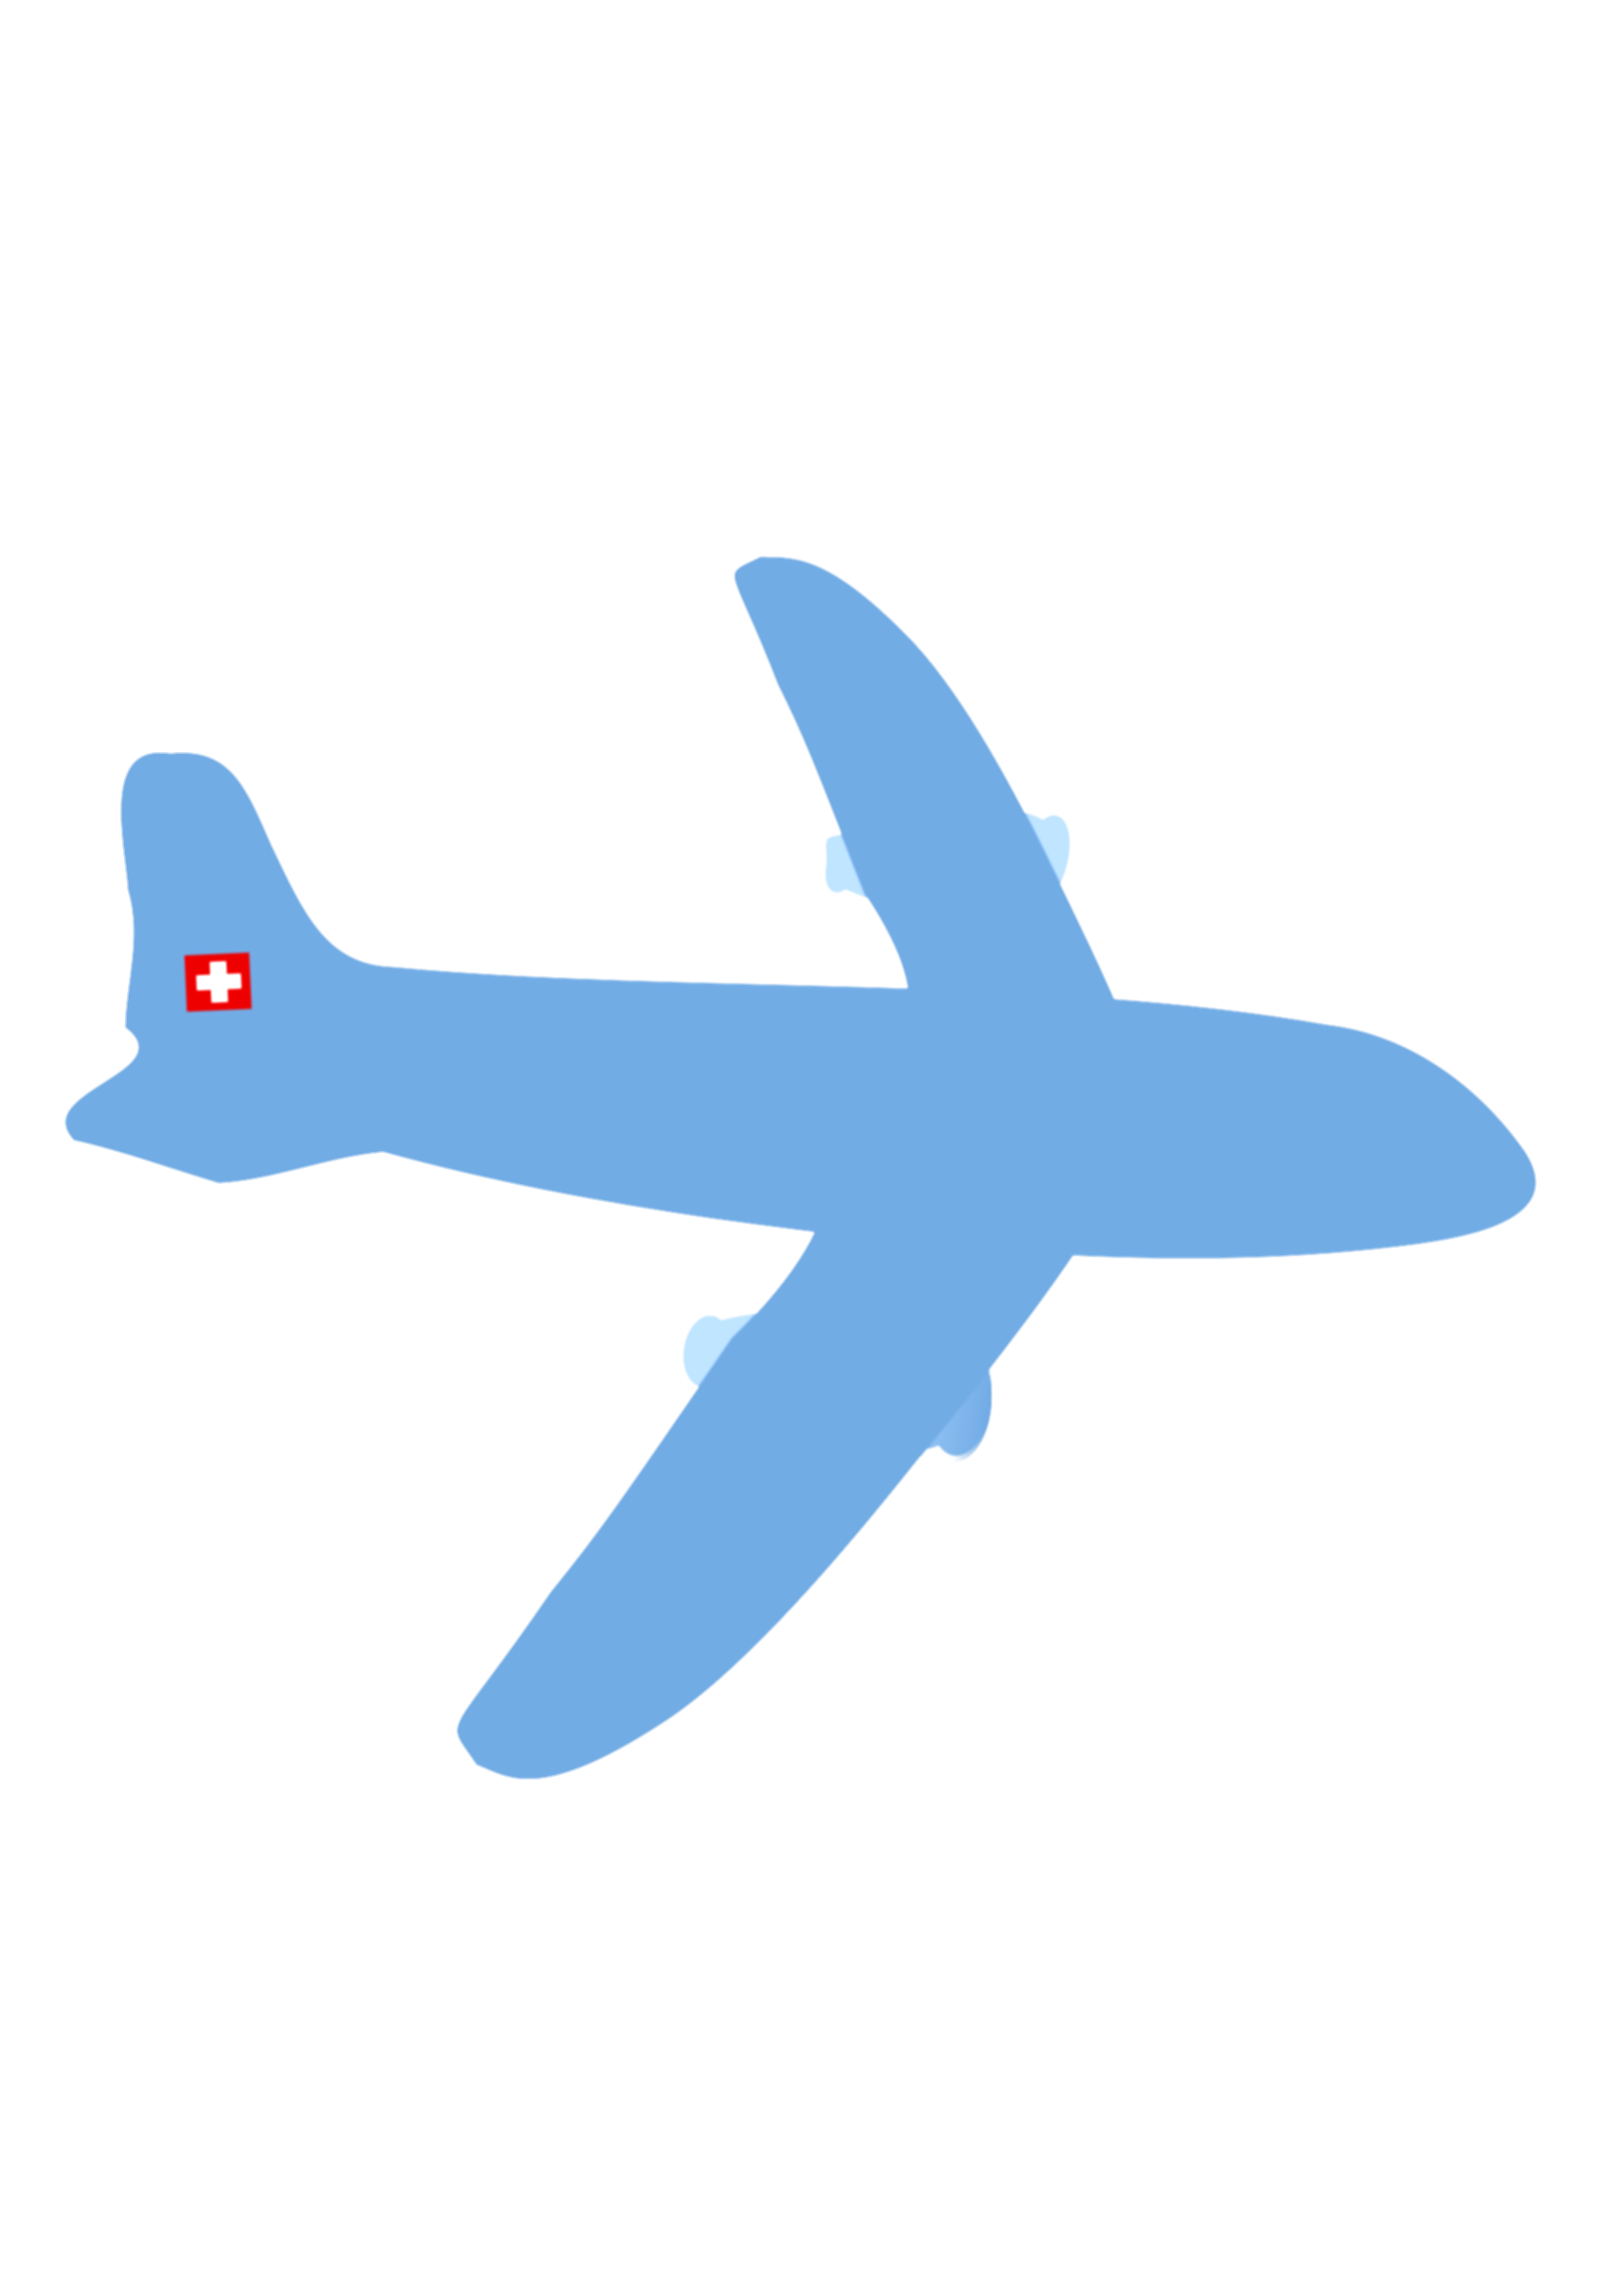 airplane clip clear background